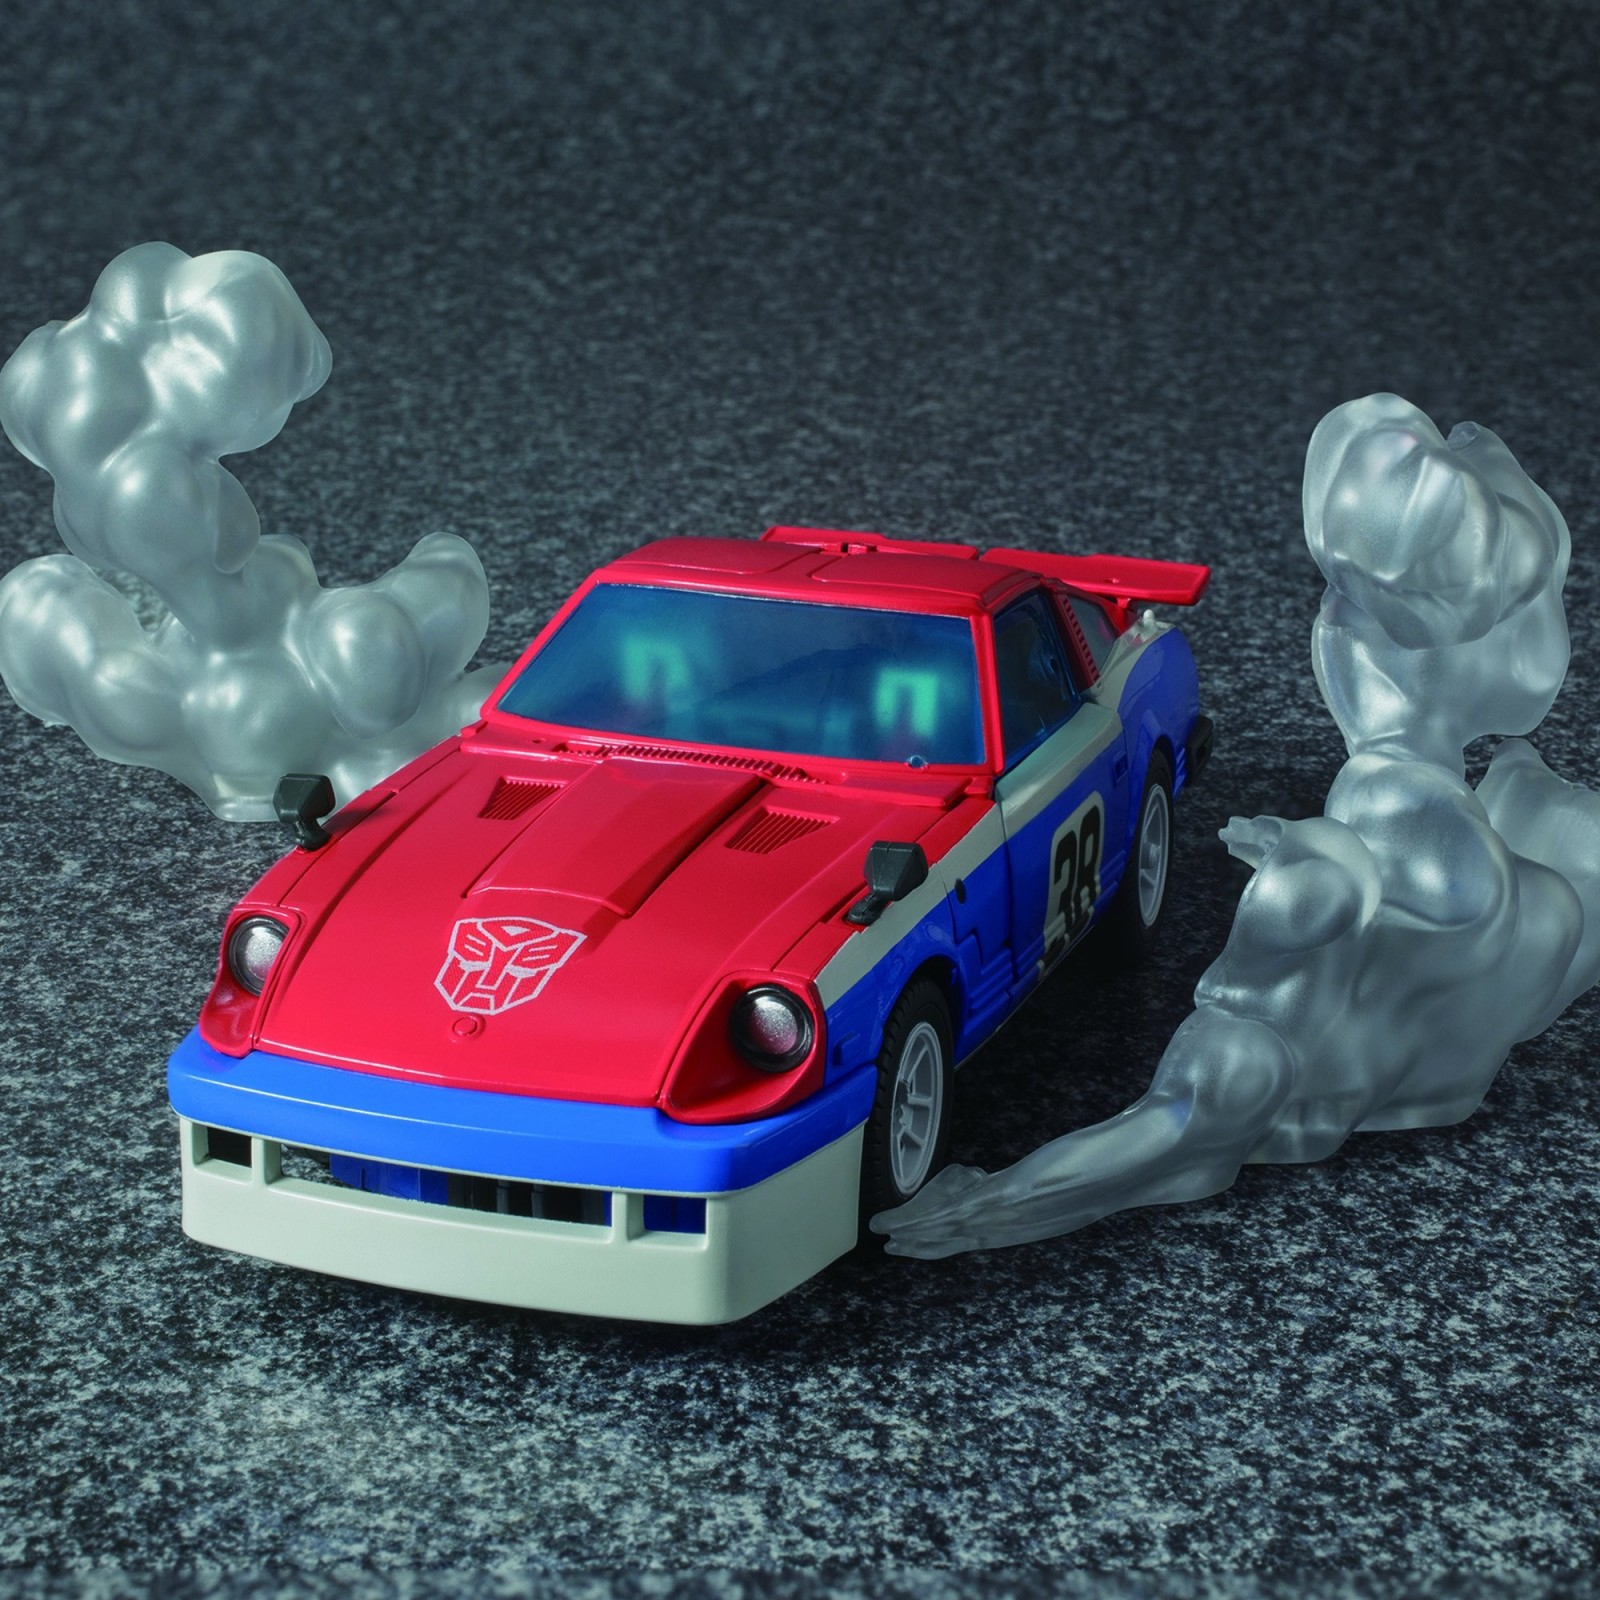 Transformers News: Bigger Higher Quality Images of Takara Tomy Transformers MP 19 Smokescreen